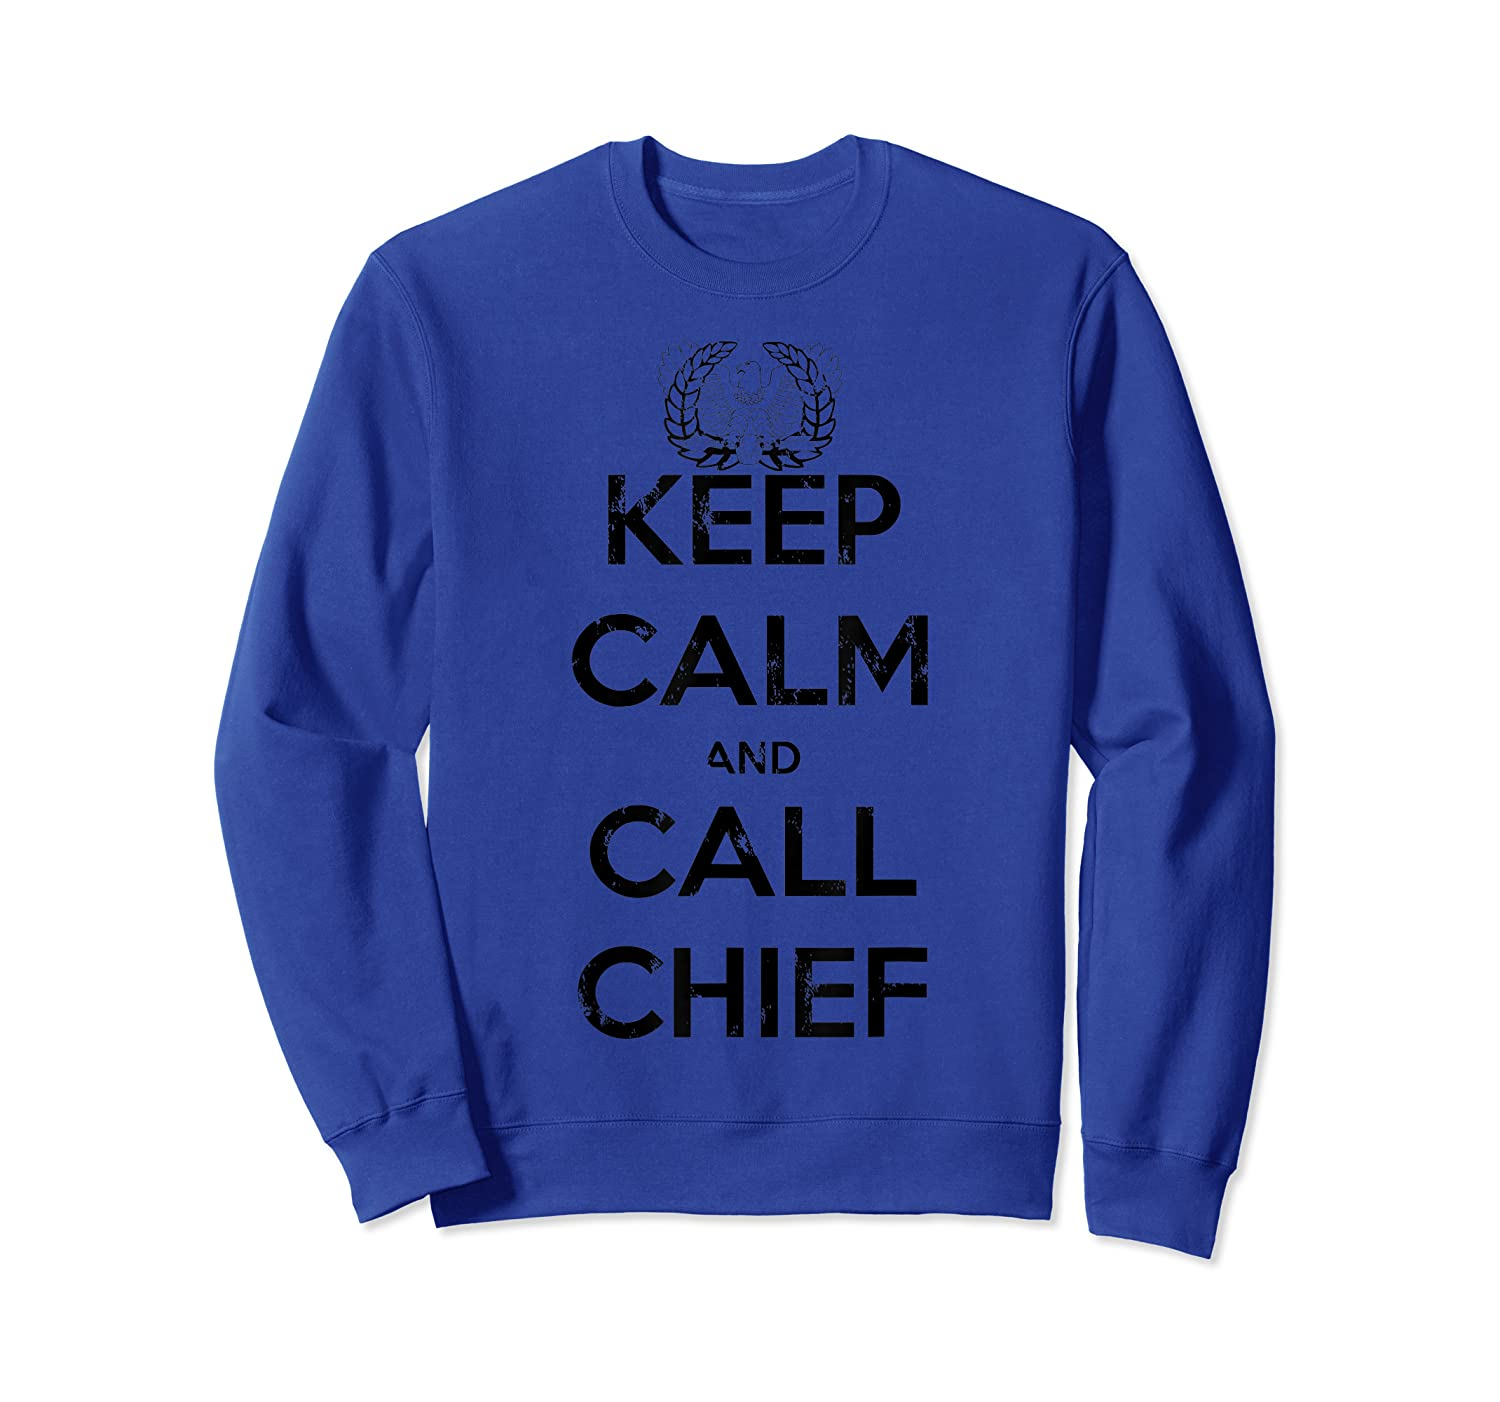 And Call Chief Warrant Officer Corps Eagle Rising Shirts Crewneck Sweater